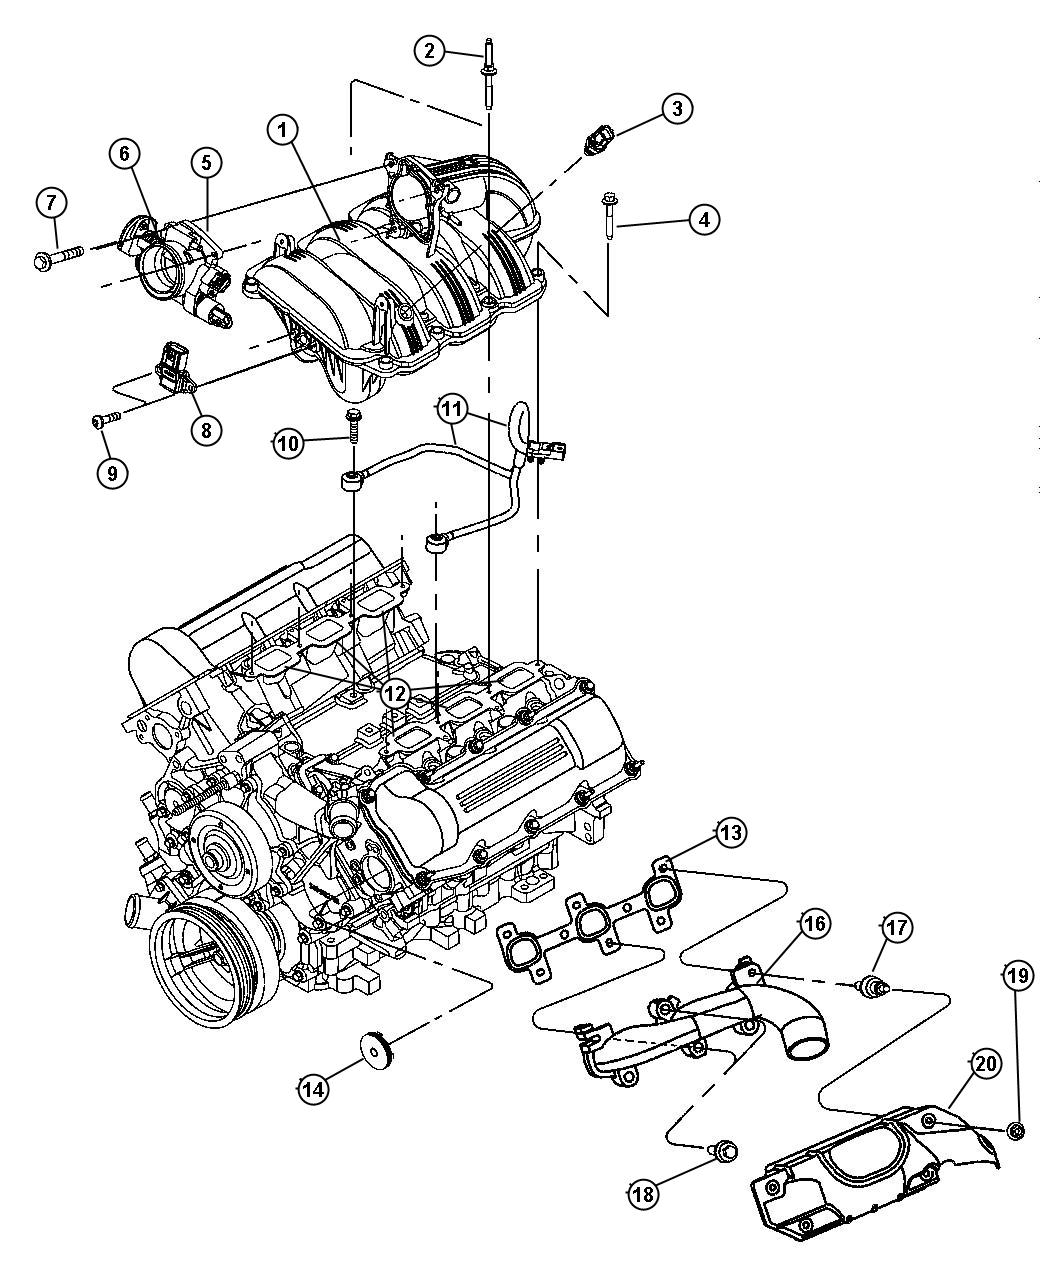 jeep liberty engine layout  jeep  free engine image for